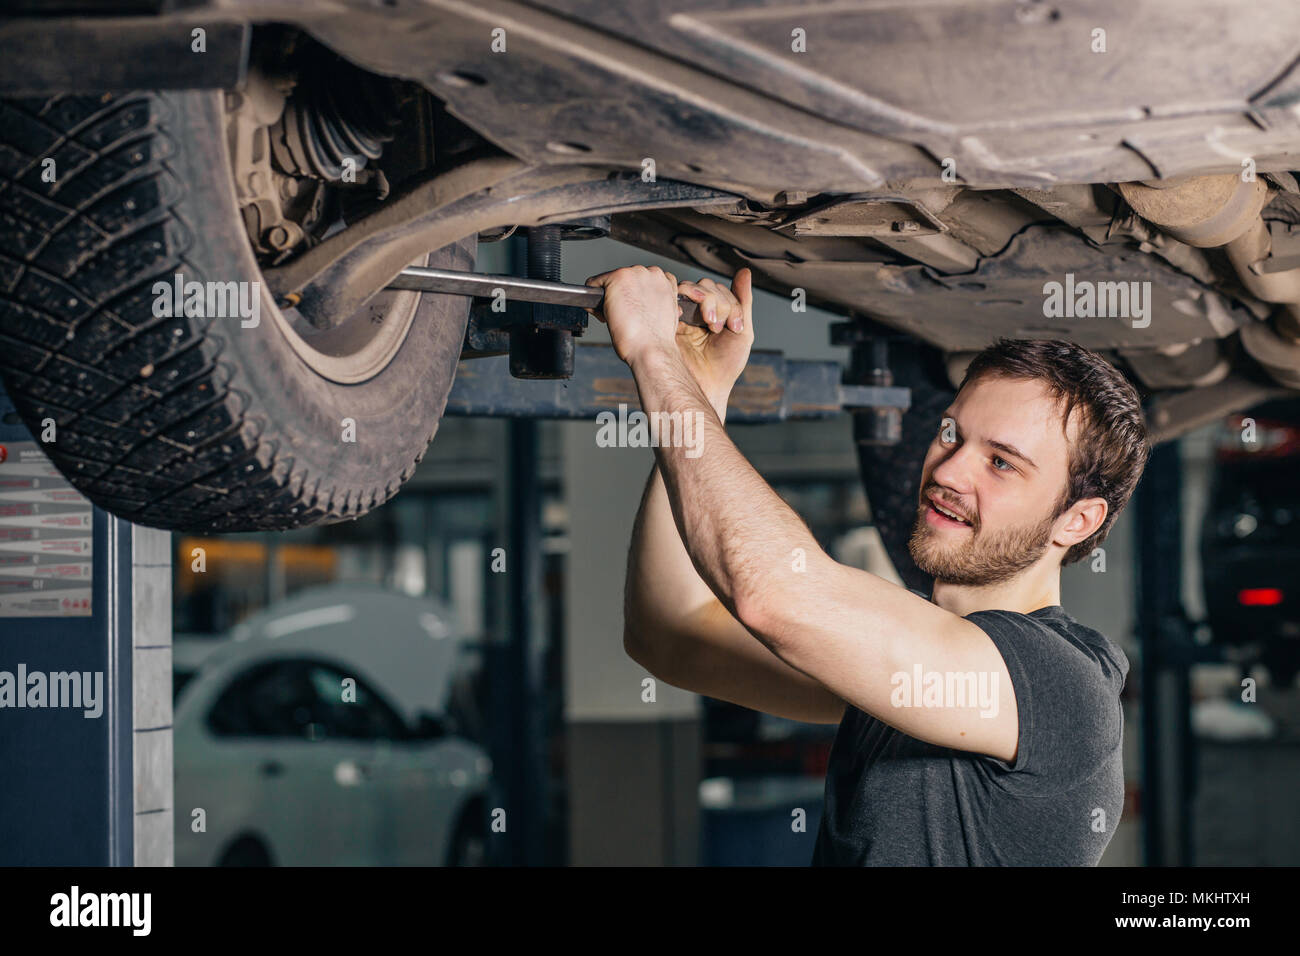 Auto mechanic working at auto repair shop under car with tool - Stock Image